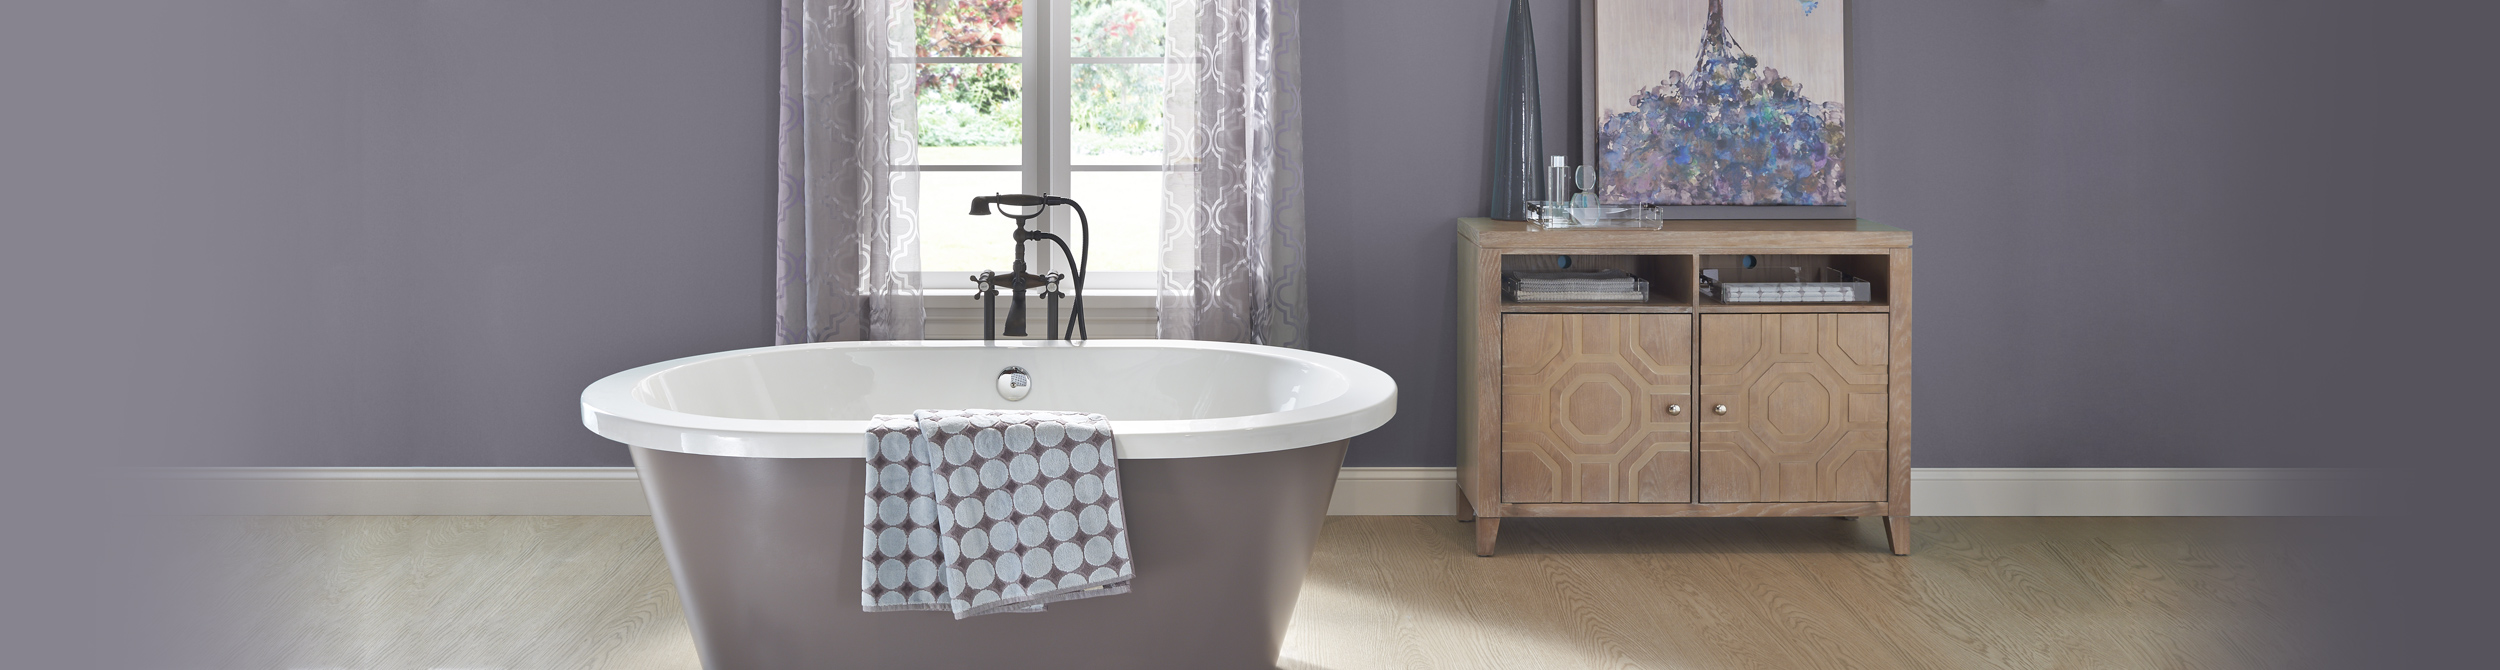 Gray Bathroom Ideas and Inspiration | Behr